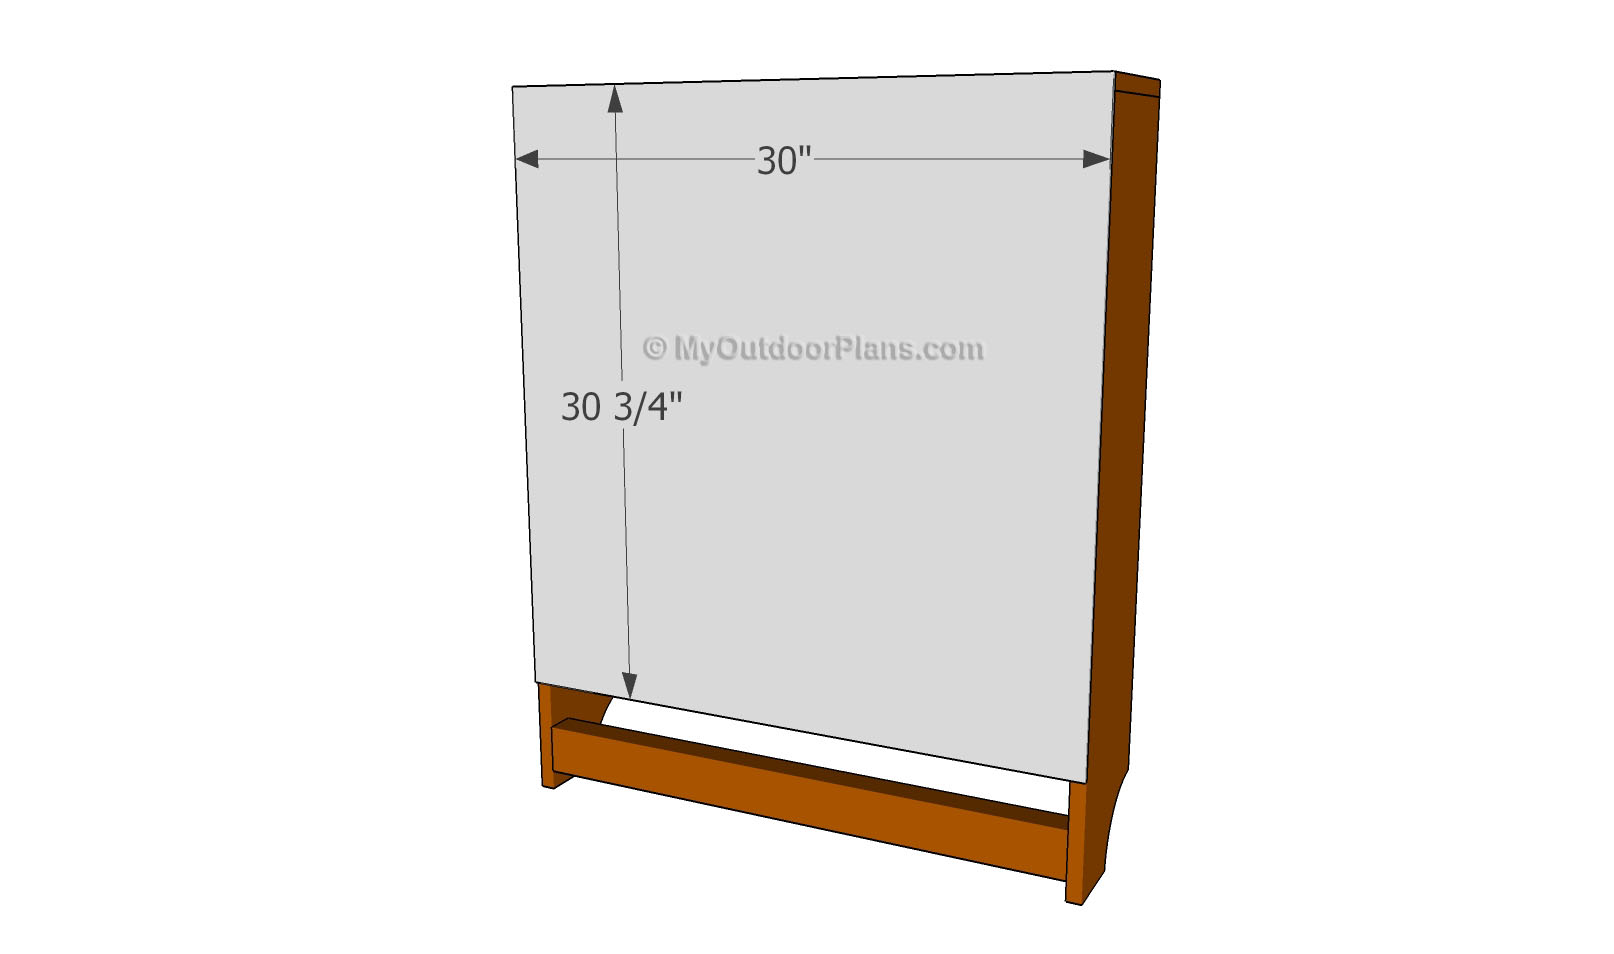 Kitchen shelves plans free outdoor plans diy shed for Attaching shelves to plastic shed